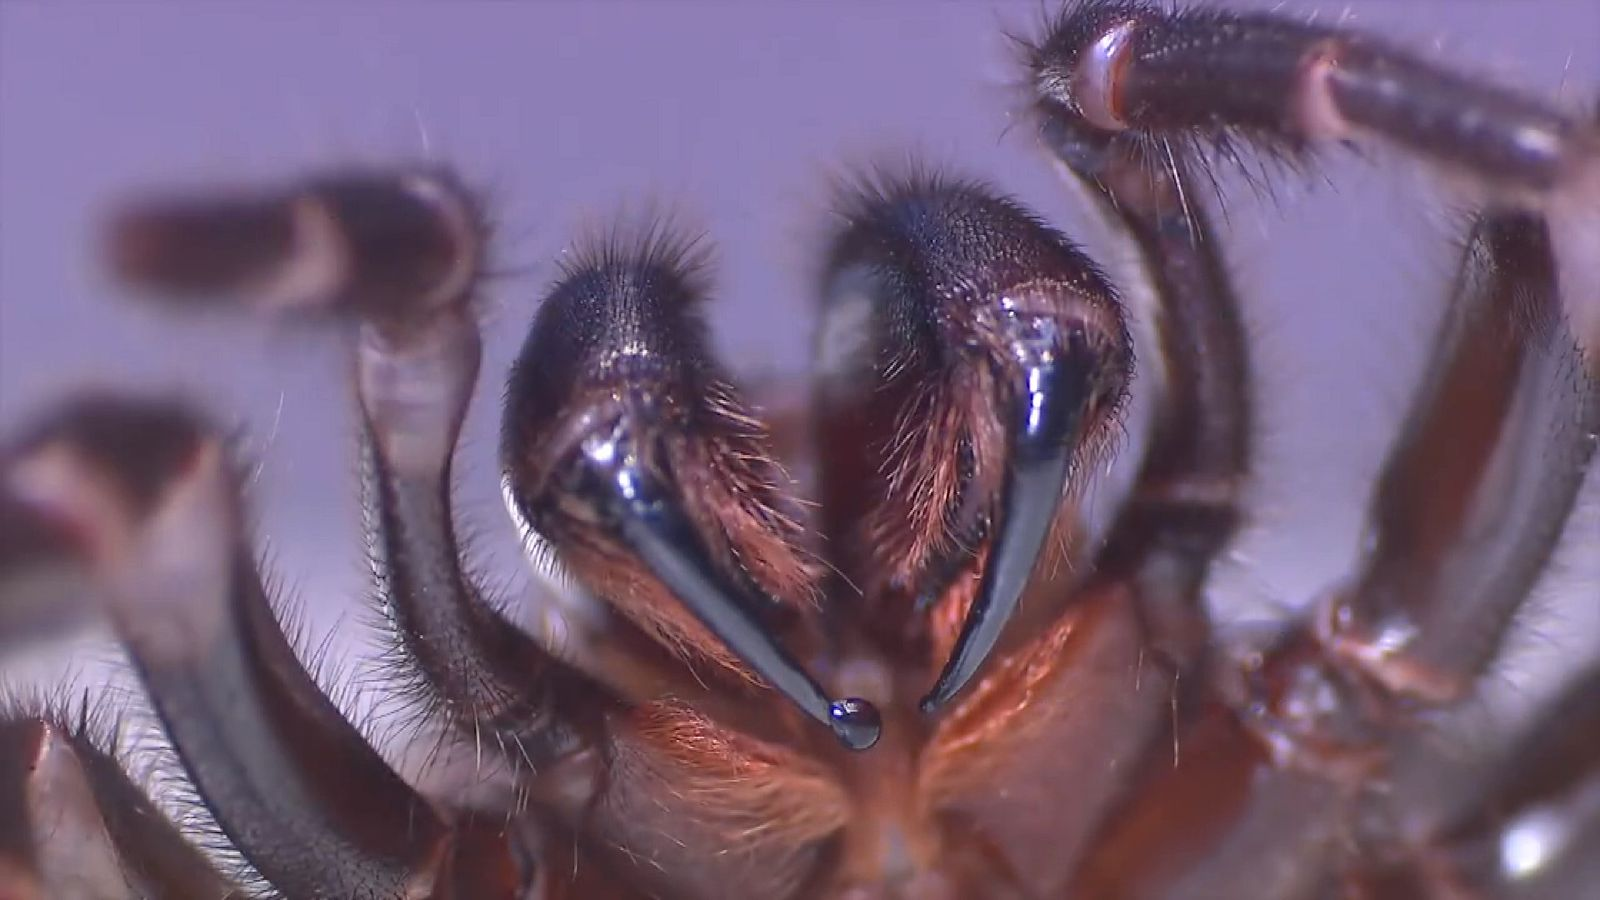 The funnel-web spider's venom can be fatal if left untreated